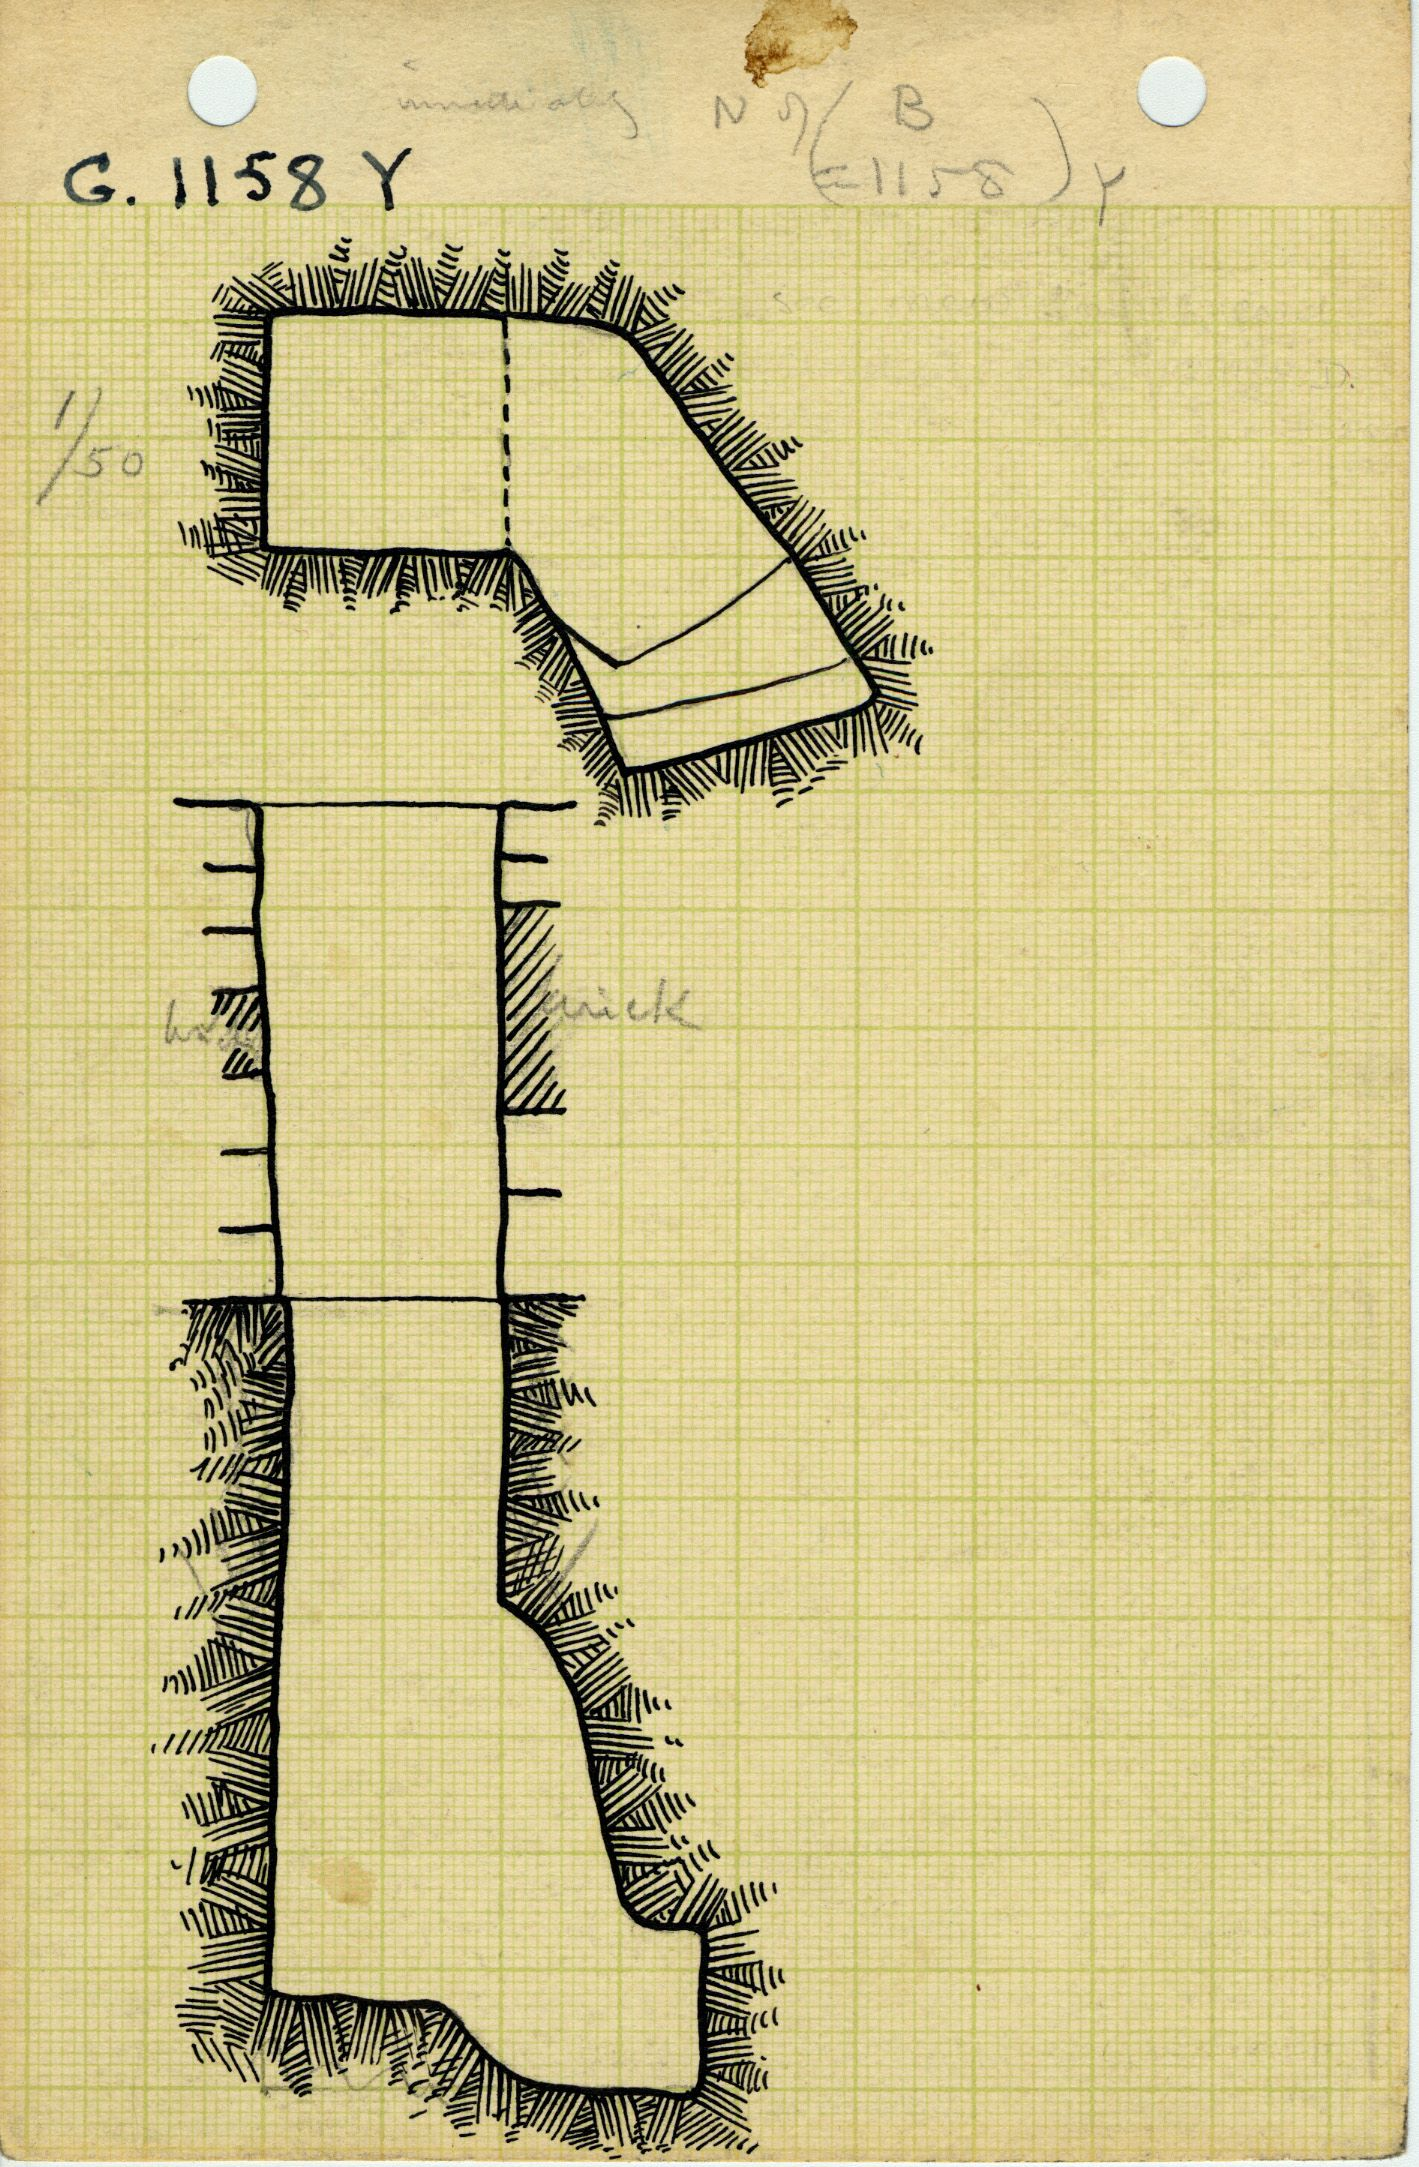 Maps and plans: G 1158, Shaft Y